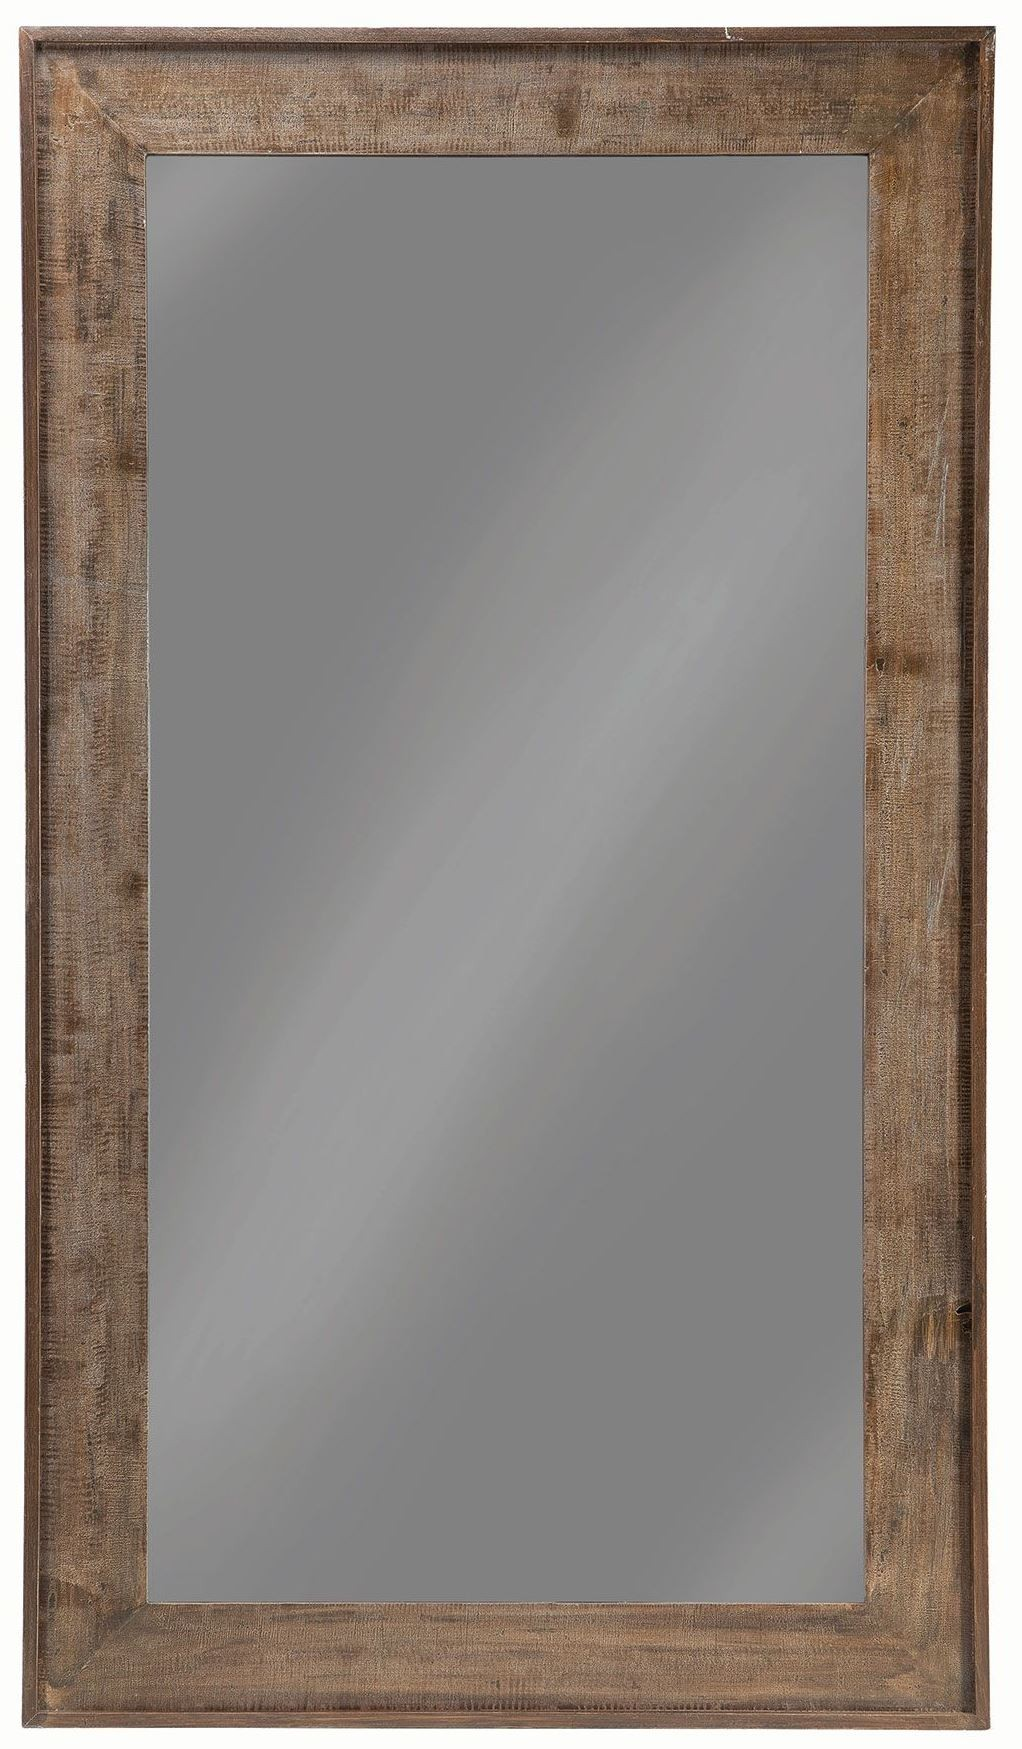 36 Quot Distressed Black Floor Mirror 902765 Coaster Furniture